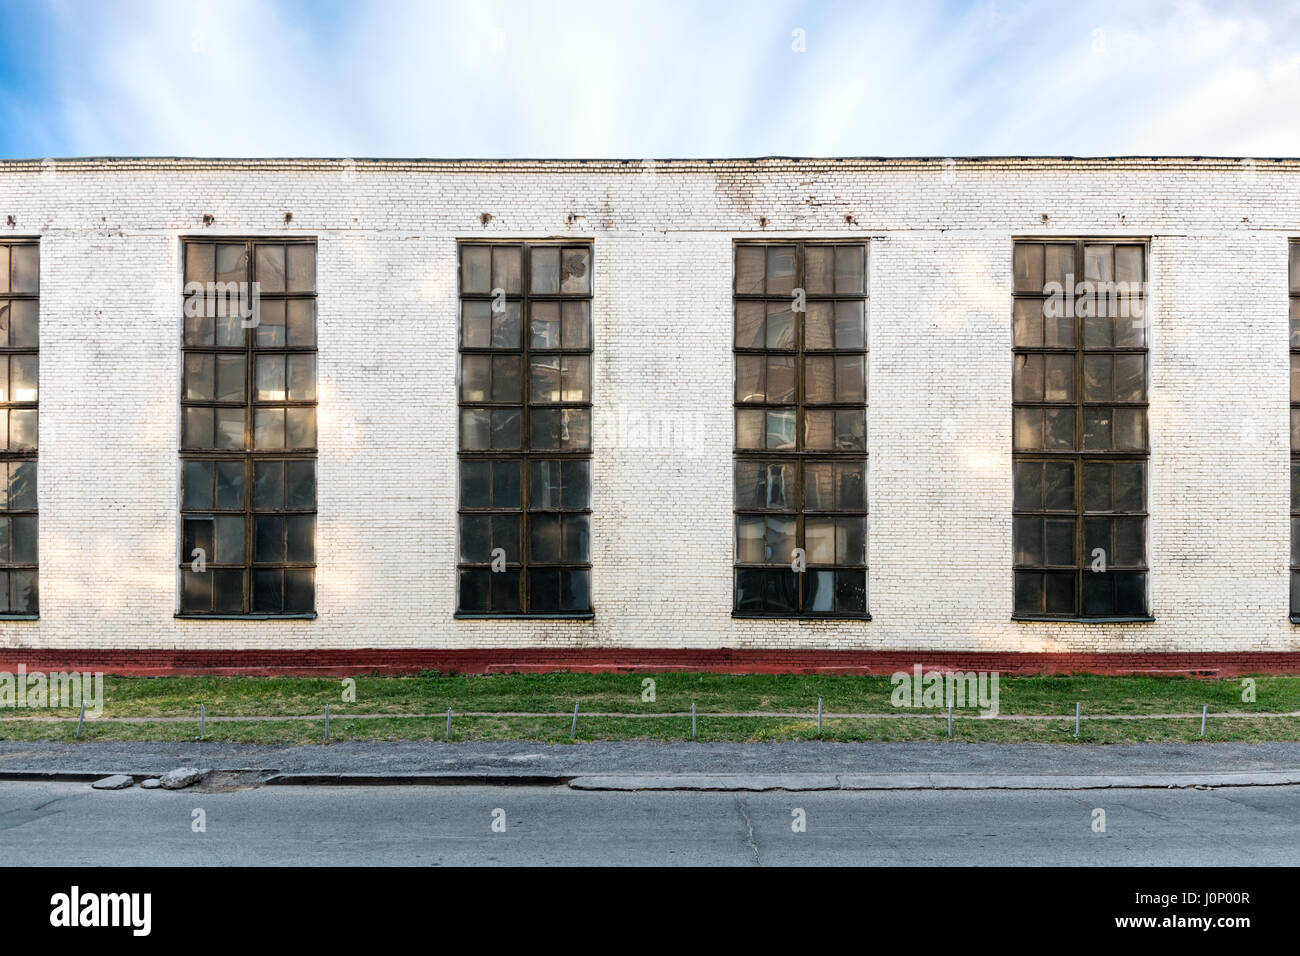 old industrial building facade with large windows stock photoold industrial building facade with large windows